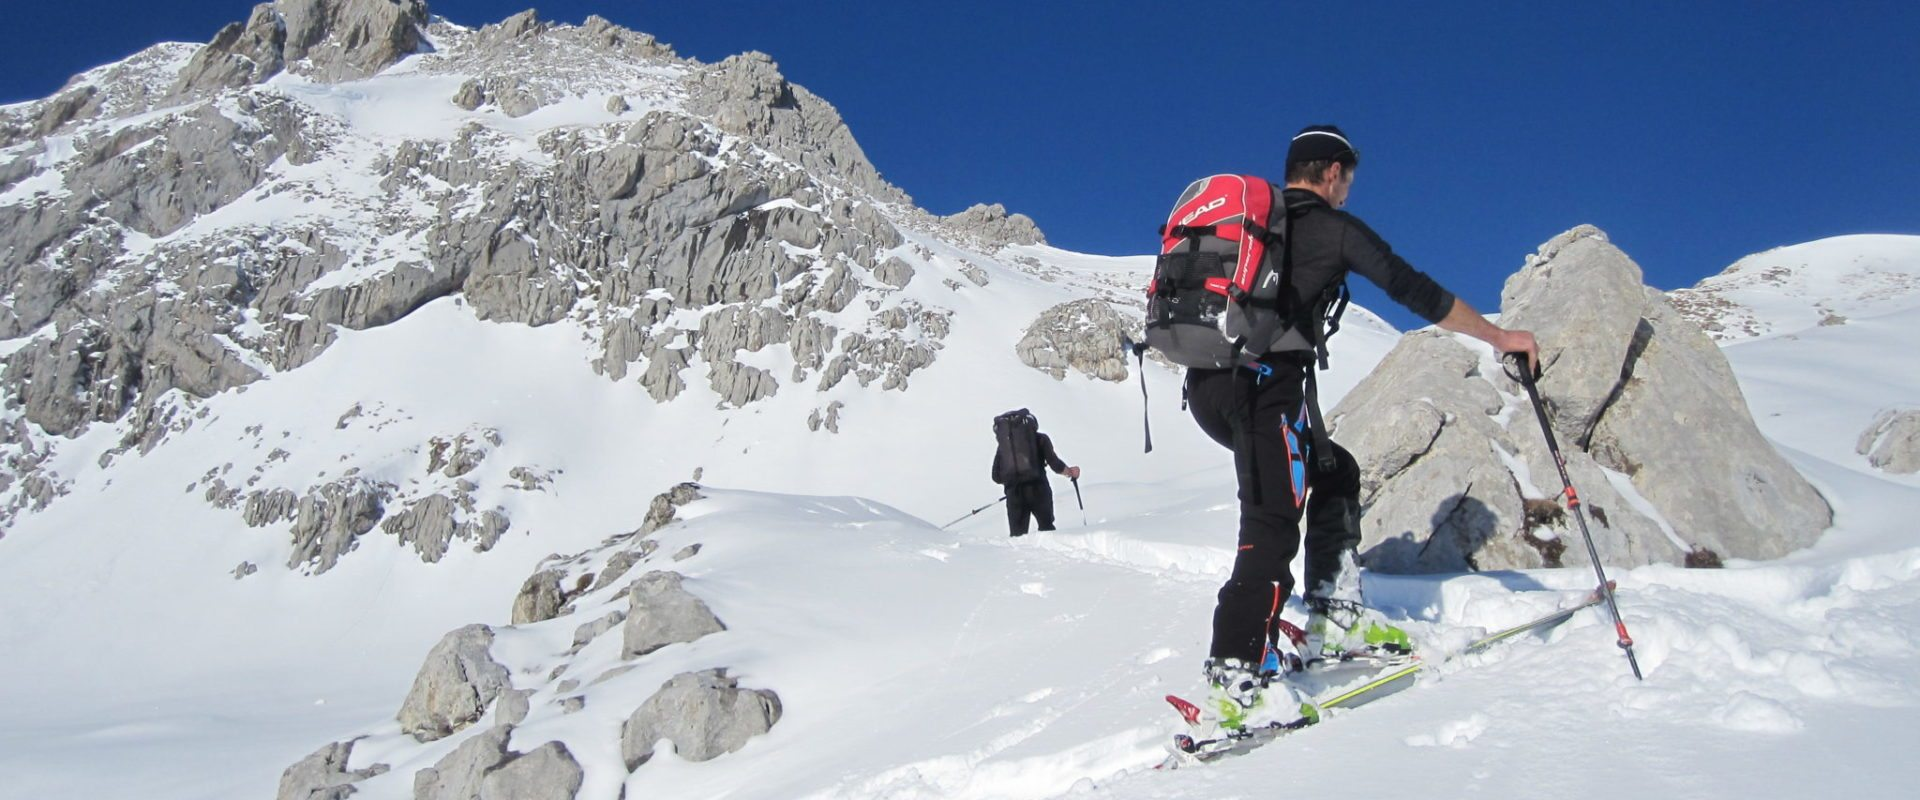 Juppenspitze (2,412 m) ski tour for advanced skiers